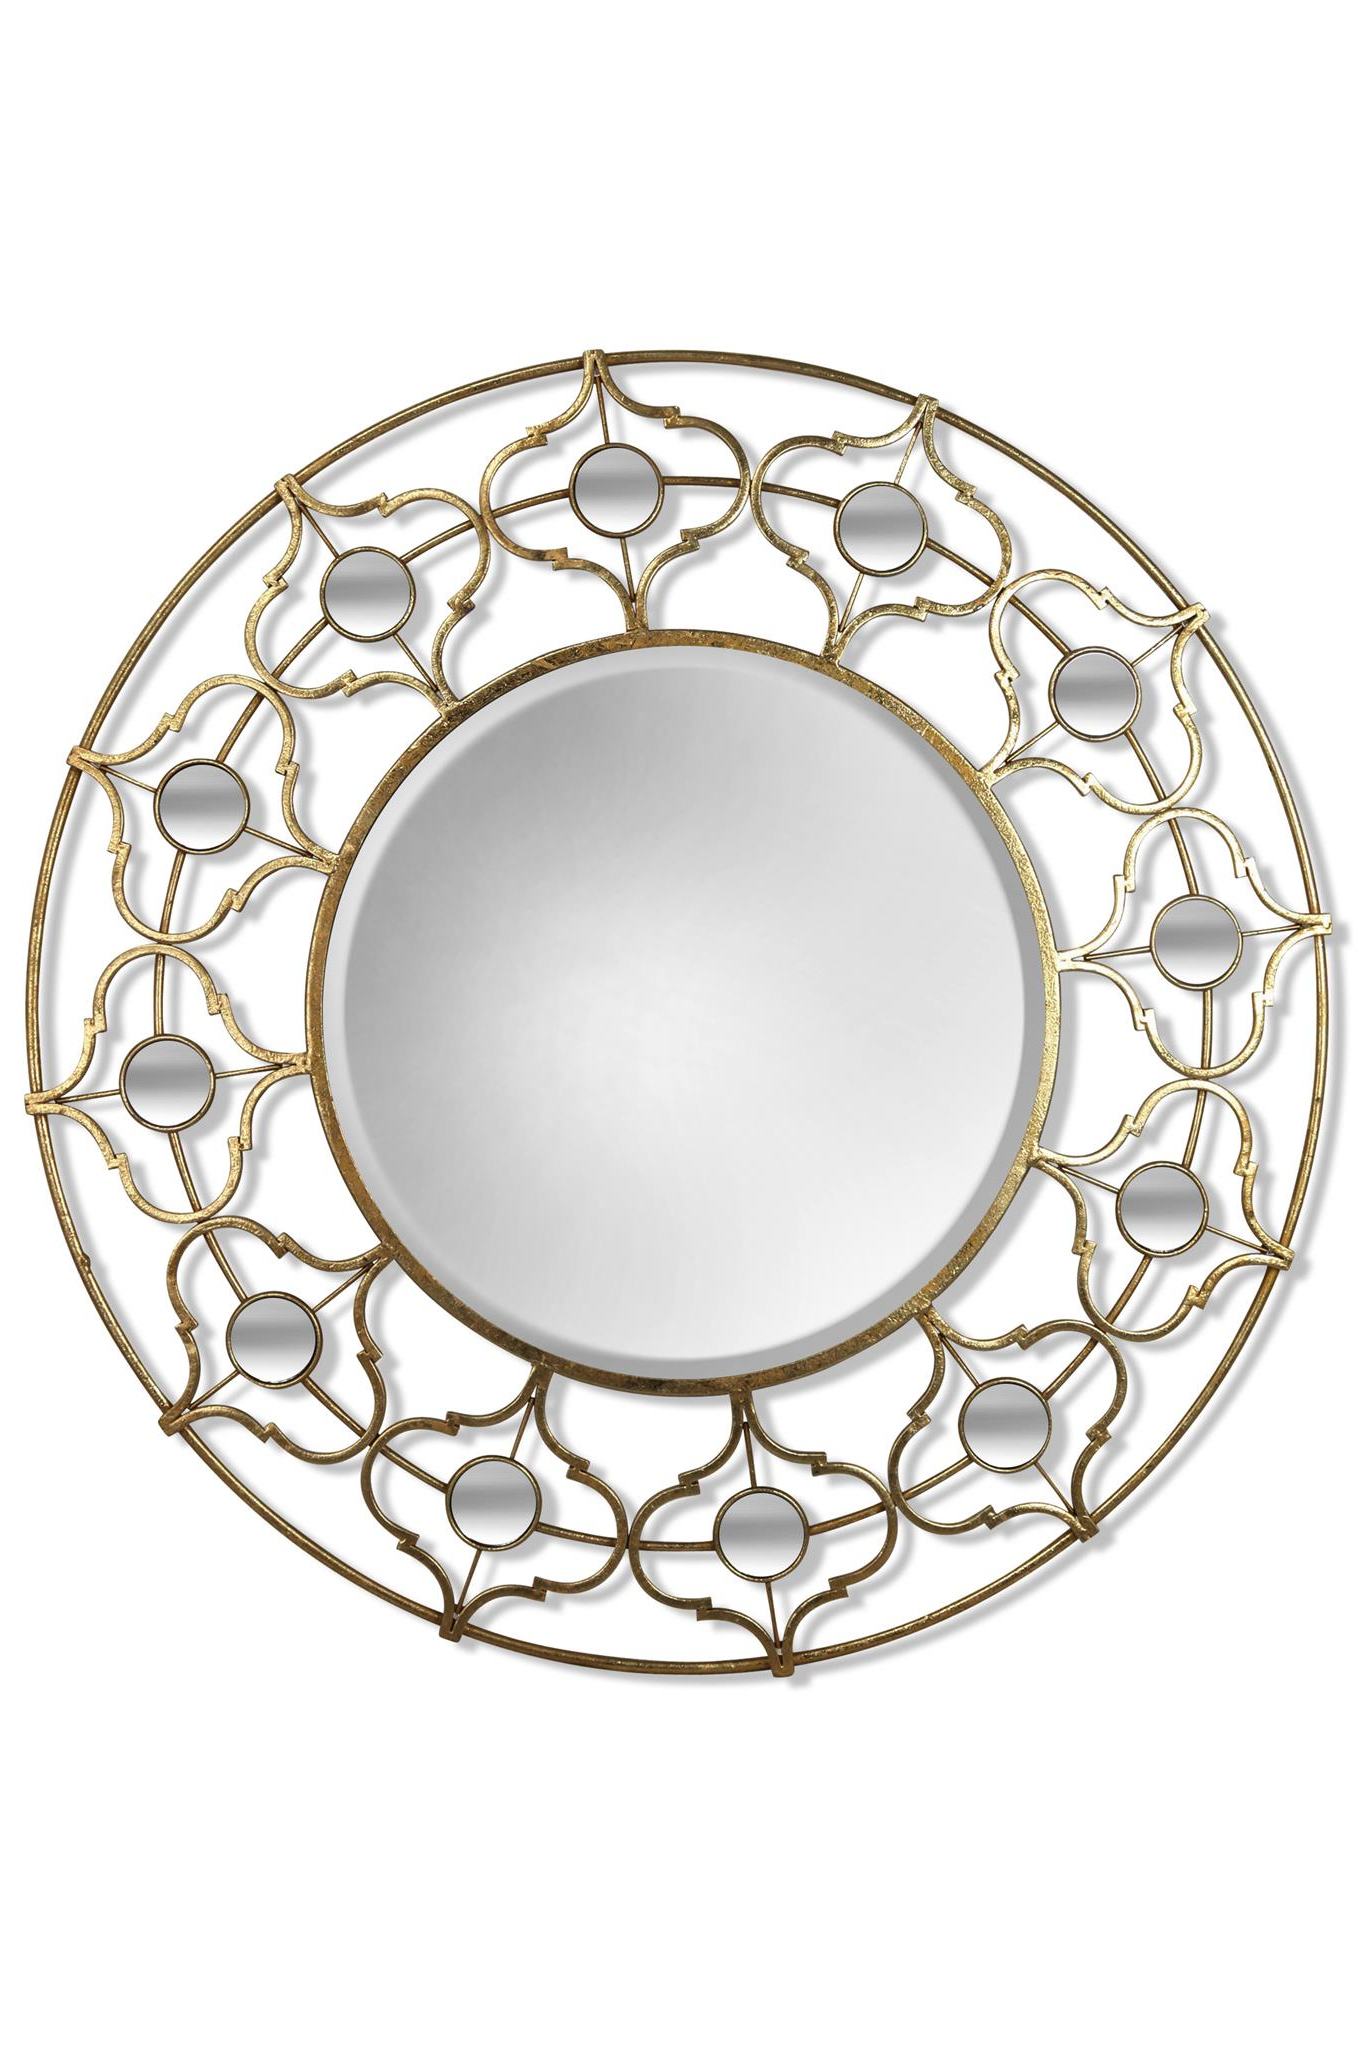 Round Metal Wall Mirror For 2020 Round Metal Wall Mirrors (Gallery 11 of 20)